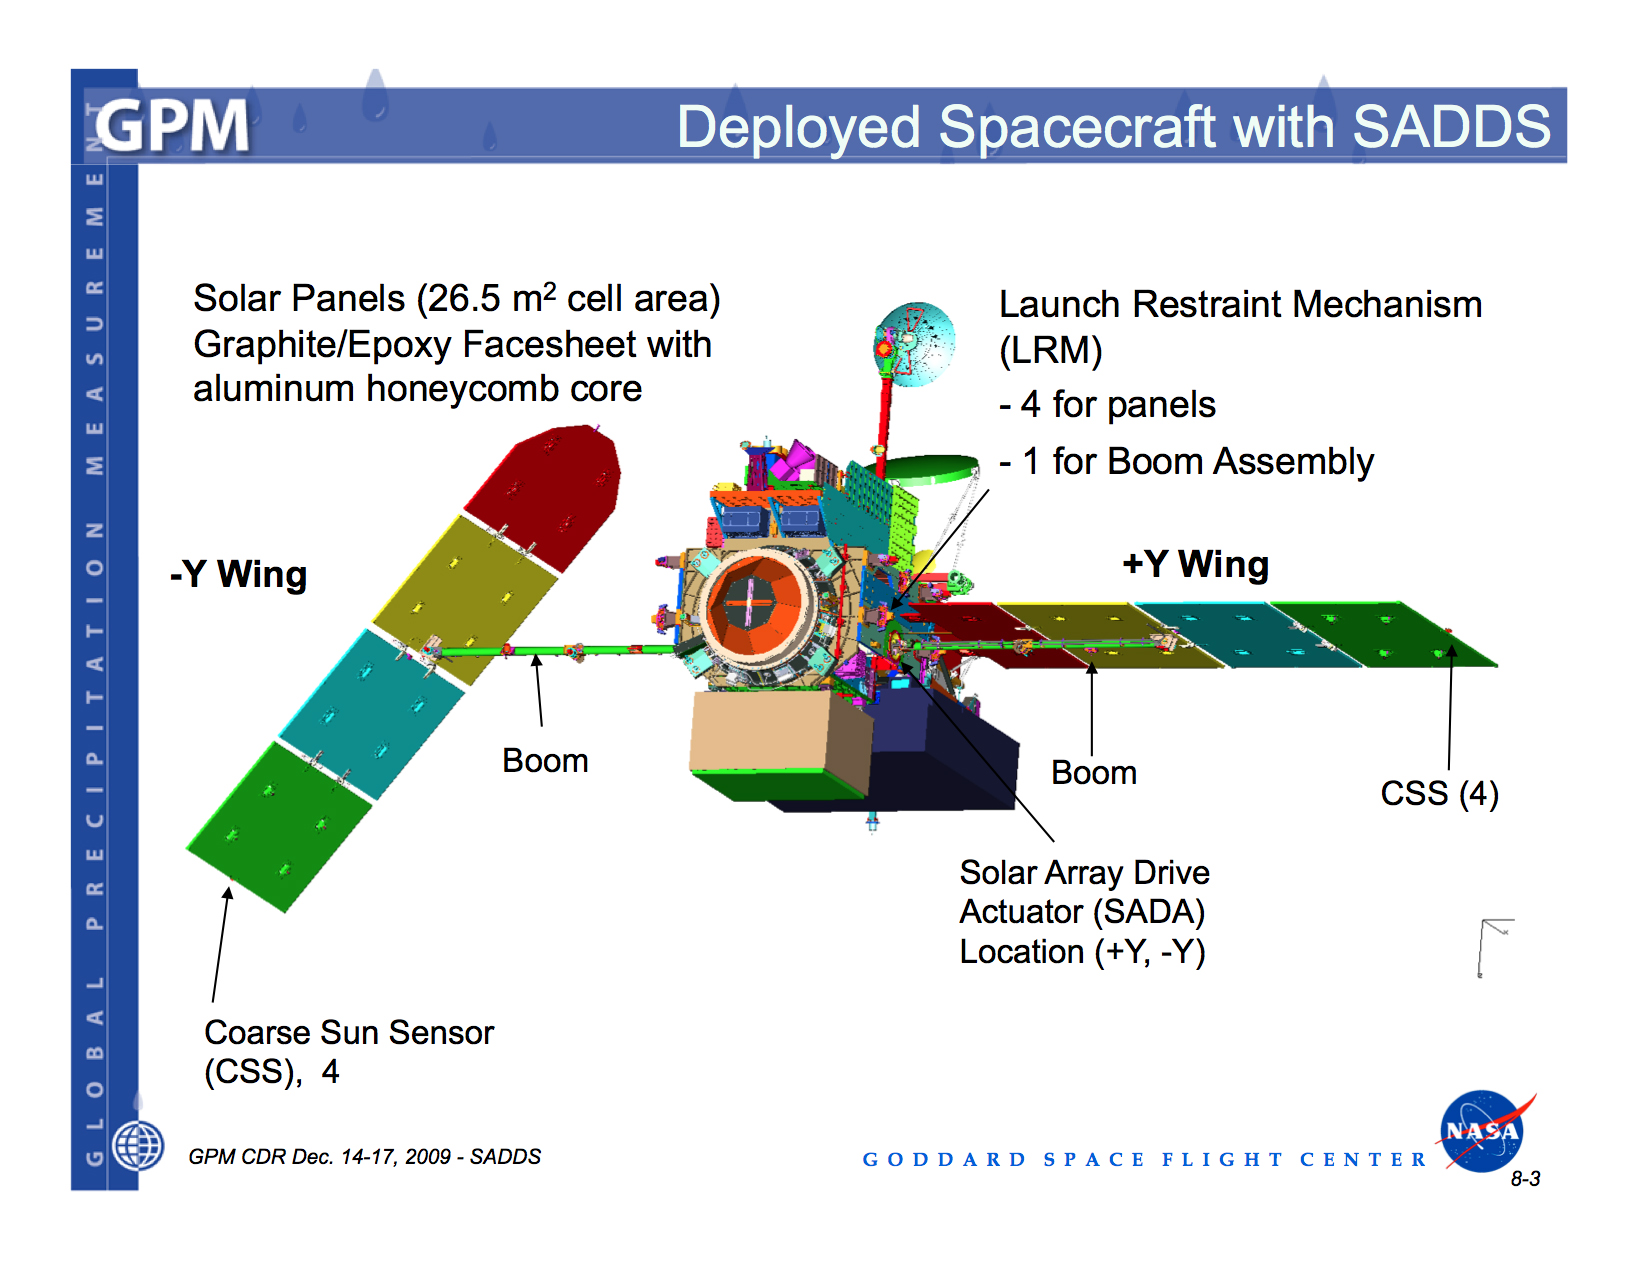 Solar Array Vibration And Acoustic Testing Precipitation Wiring Panels In Parallel Diagram Cg View Of The Satellite Showing Y Wings Coarse Sun Sensors